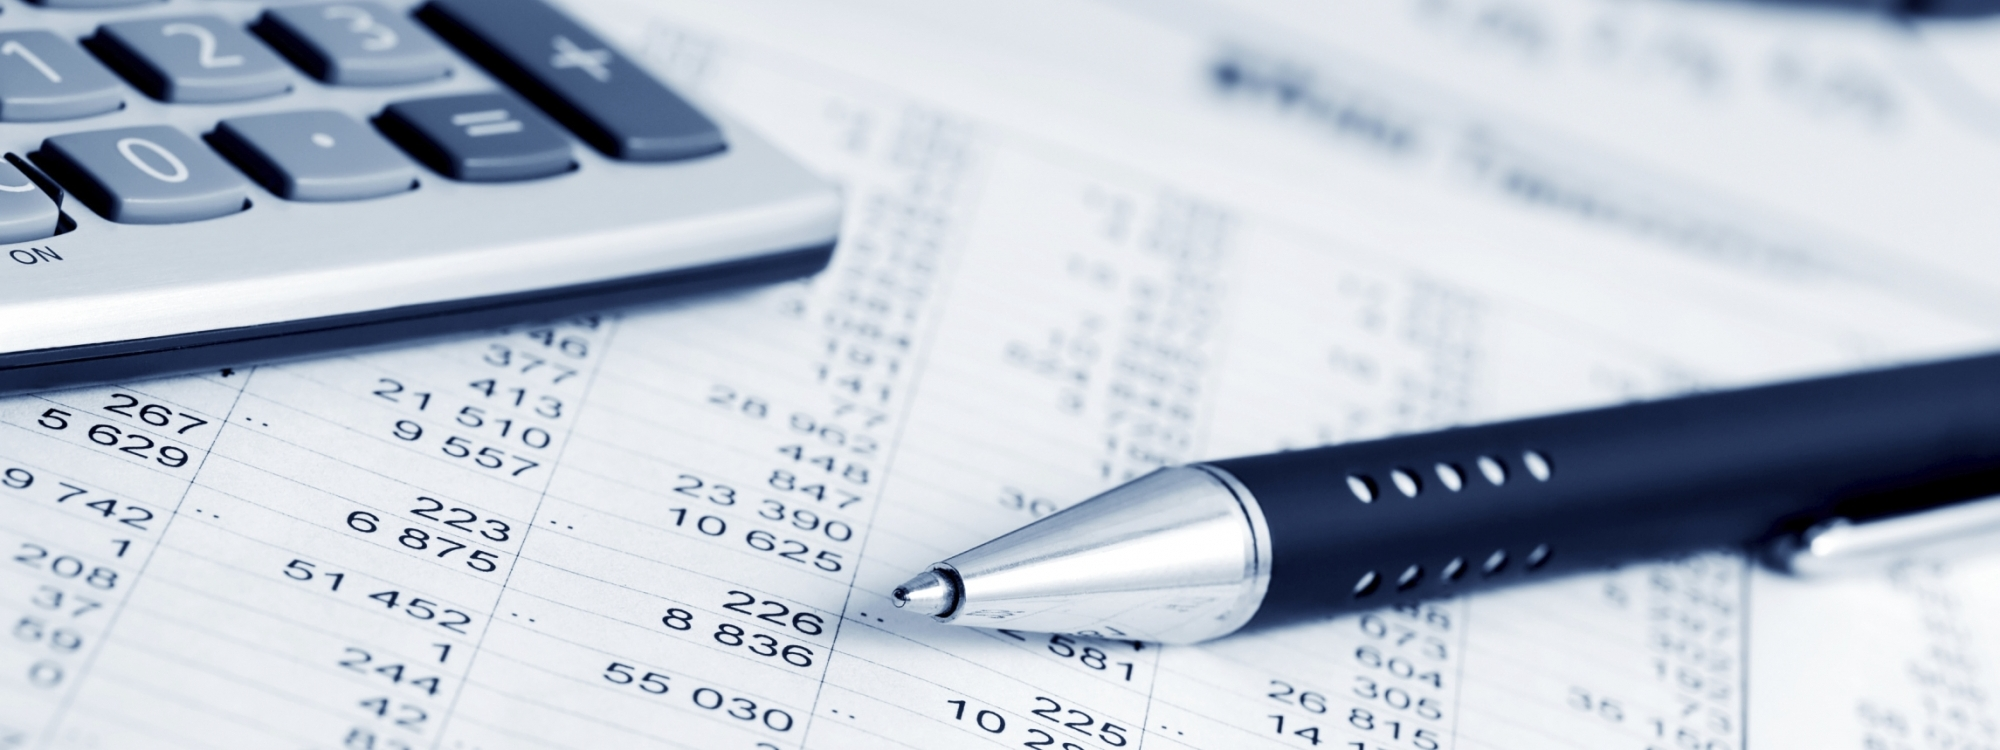 Hire A Professional Accountant To Manage Your Paperwork Efficiently